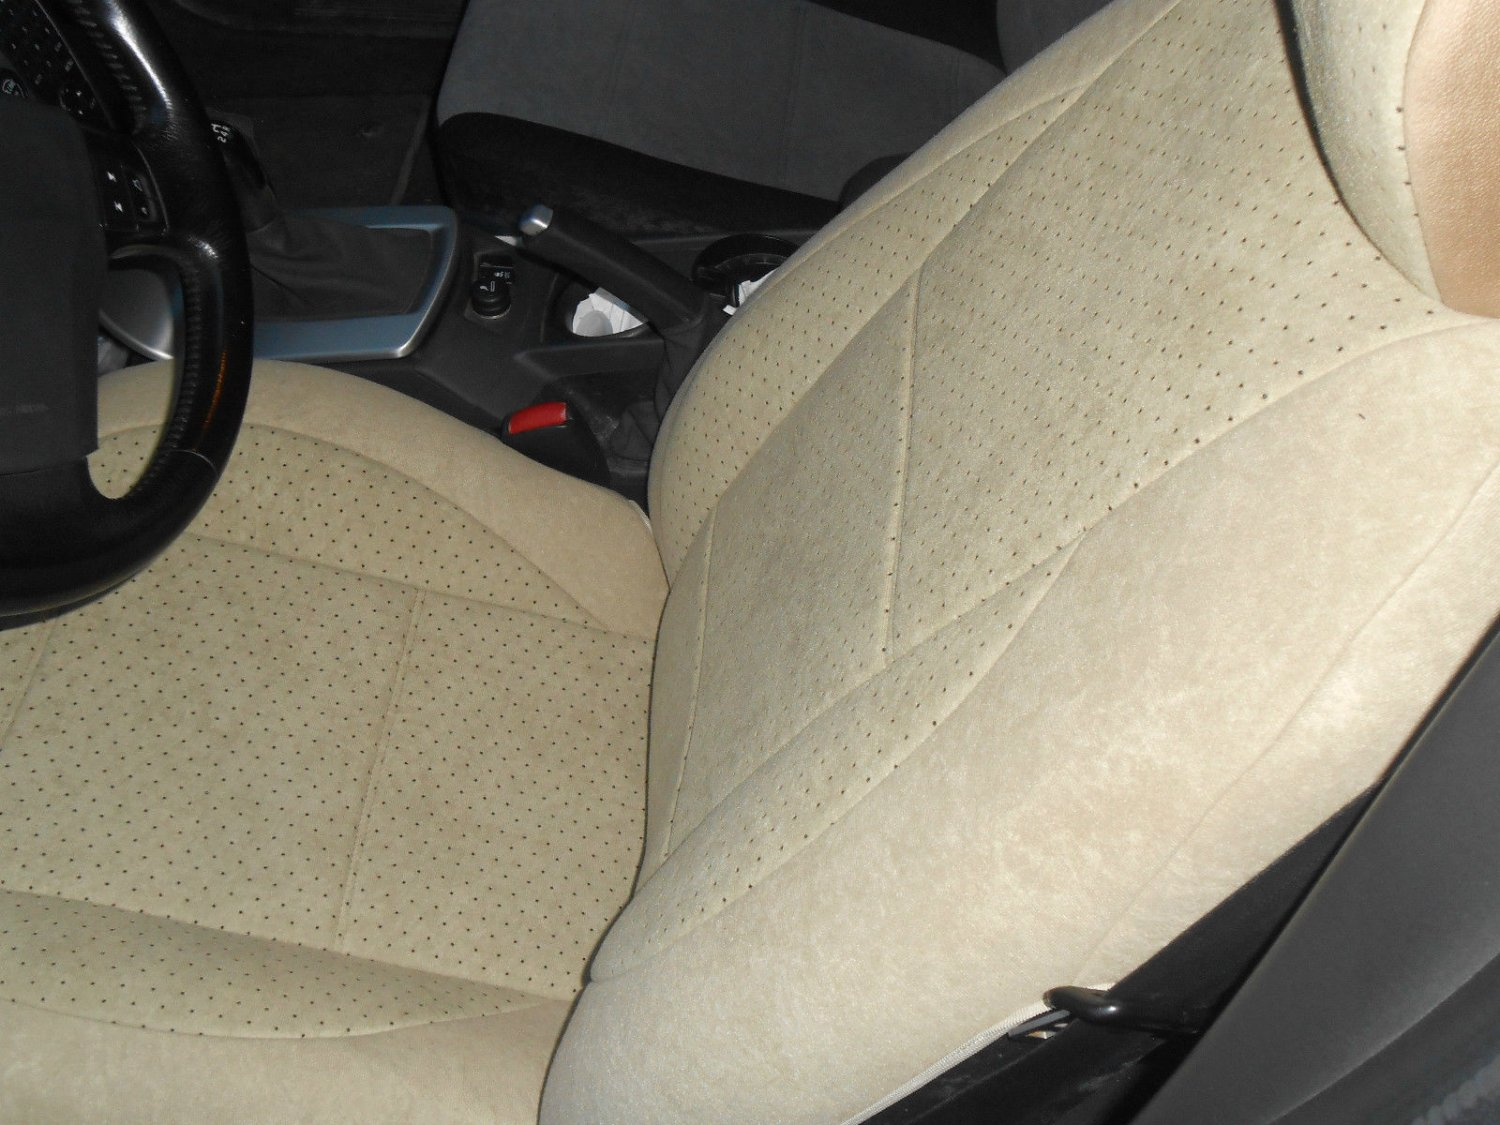 Toyota Sienna XL30 2010�present TWO FRONT CUSTOM VELOUR TAN (BEIGE) CAR SEAT COVERS